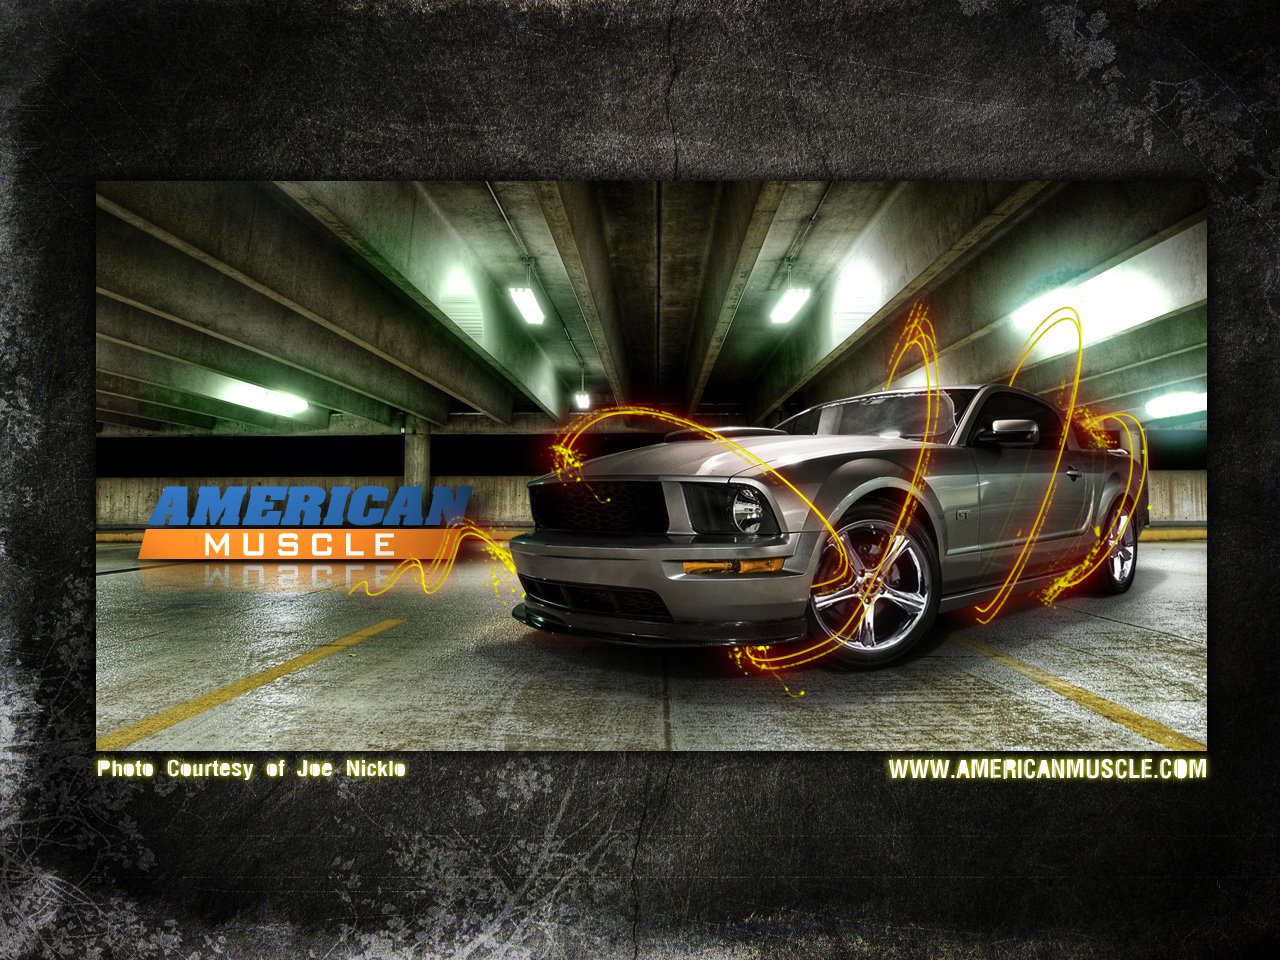 Ford Mustang Wallpapers Mustang Backgrounds At Americanmuscle Com Free Shipping